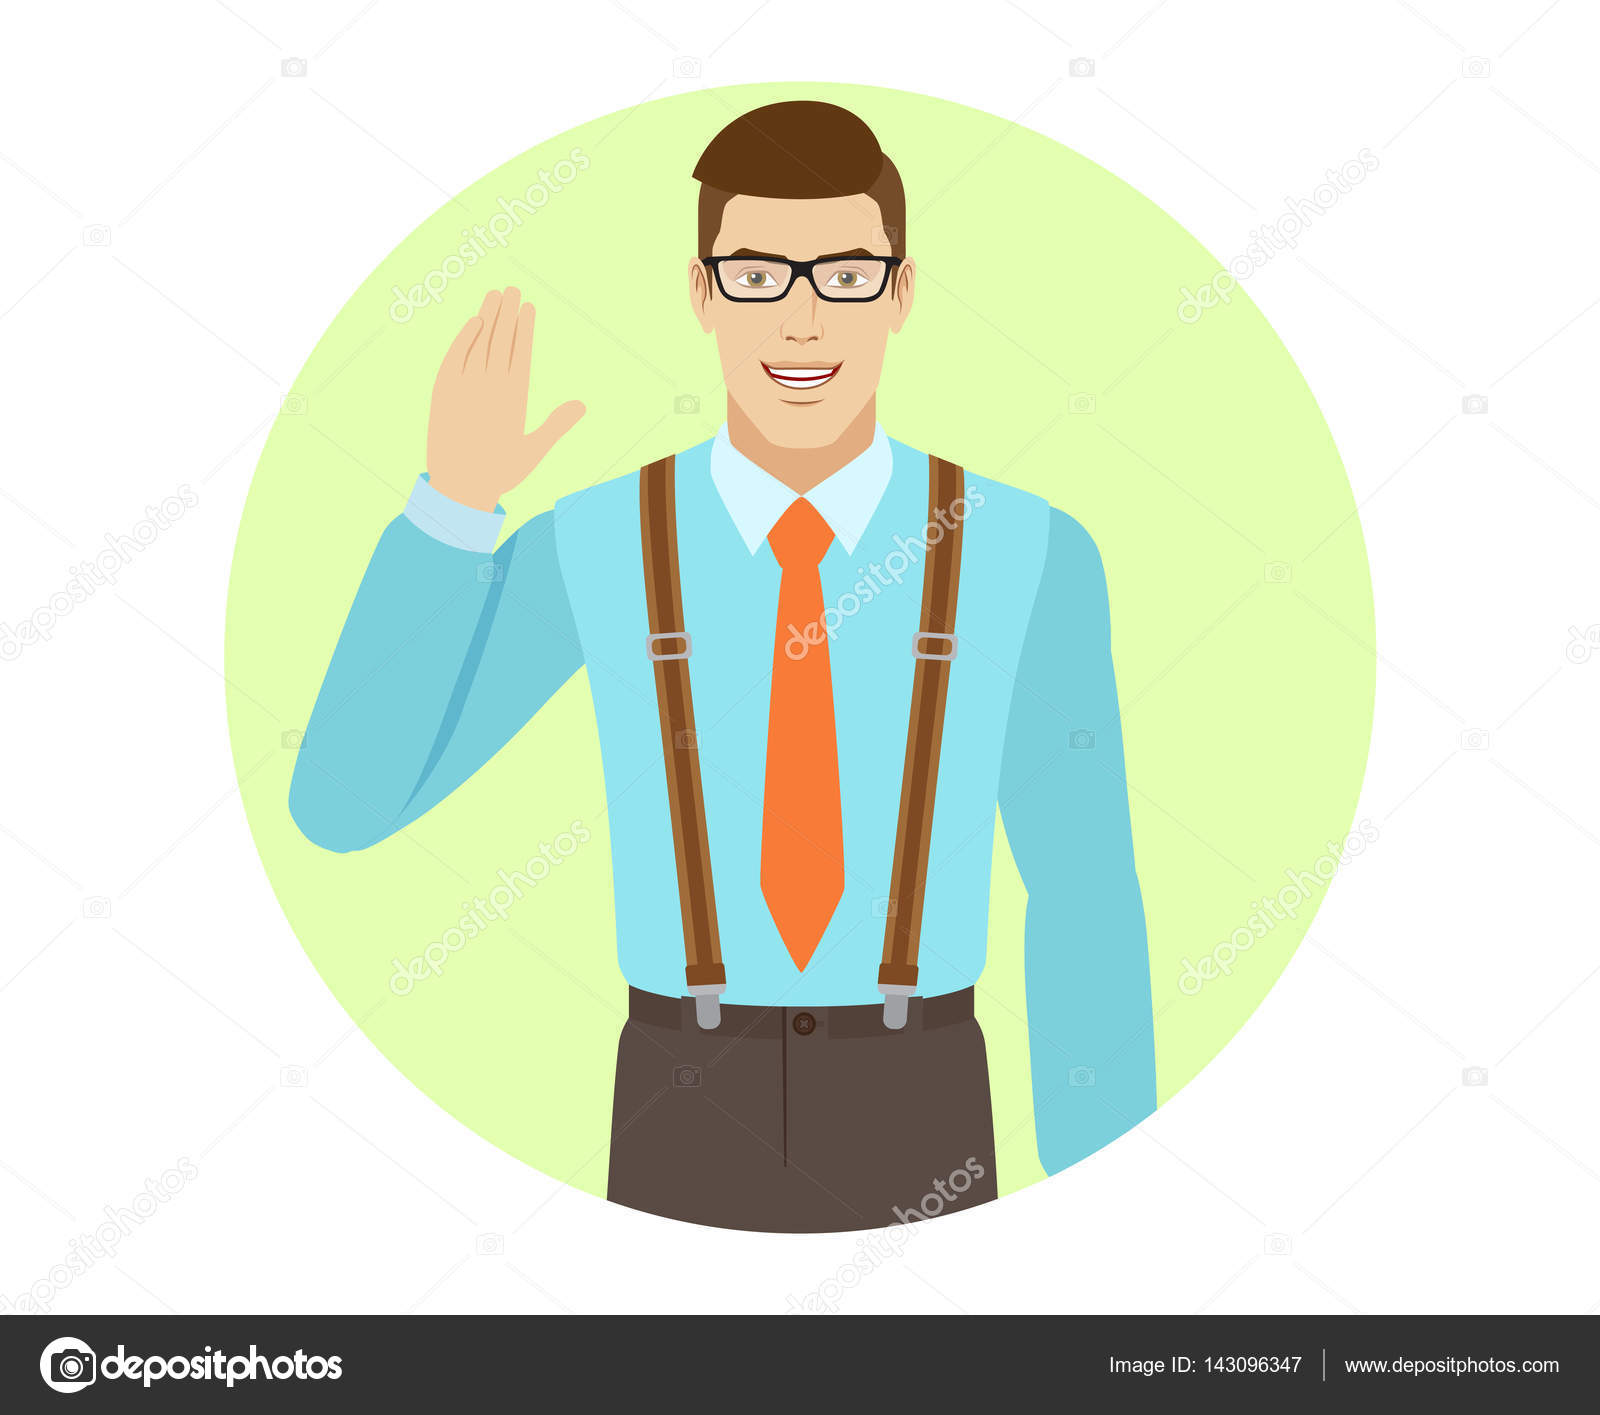 Businessman greeting someone with his hand raised up stock vector businessman greeting someone with his hand raised up stock vector m4hsunfo